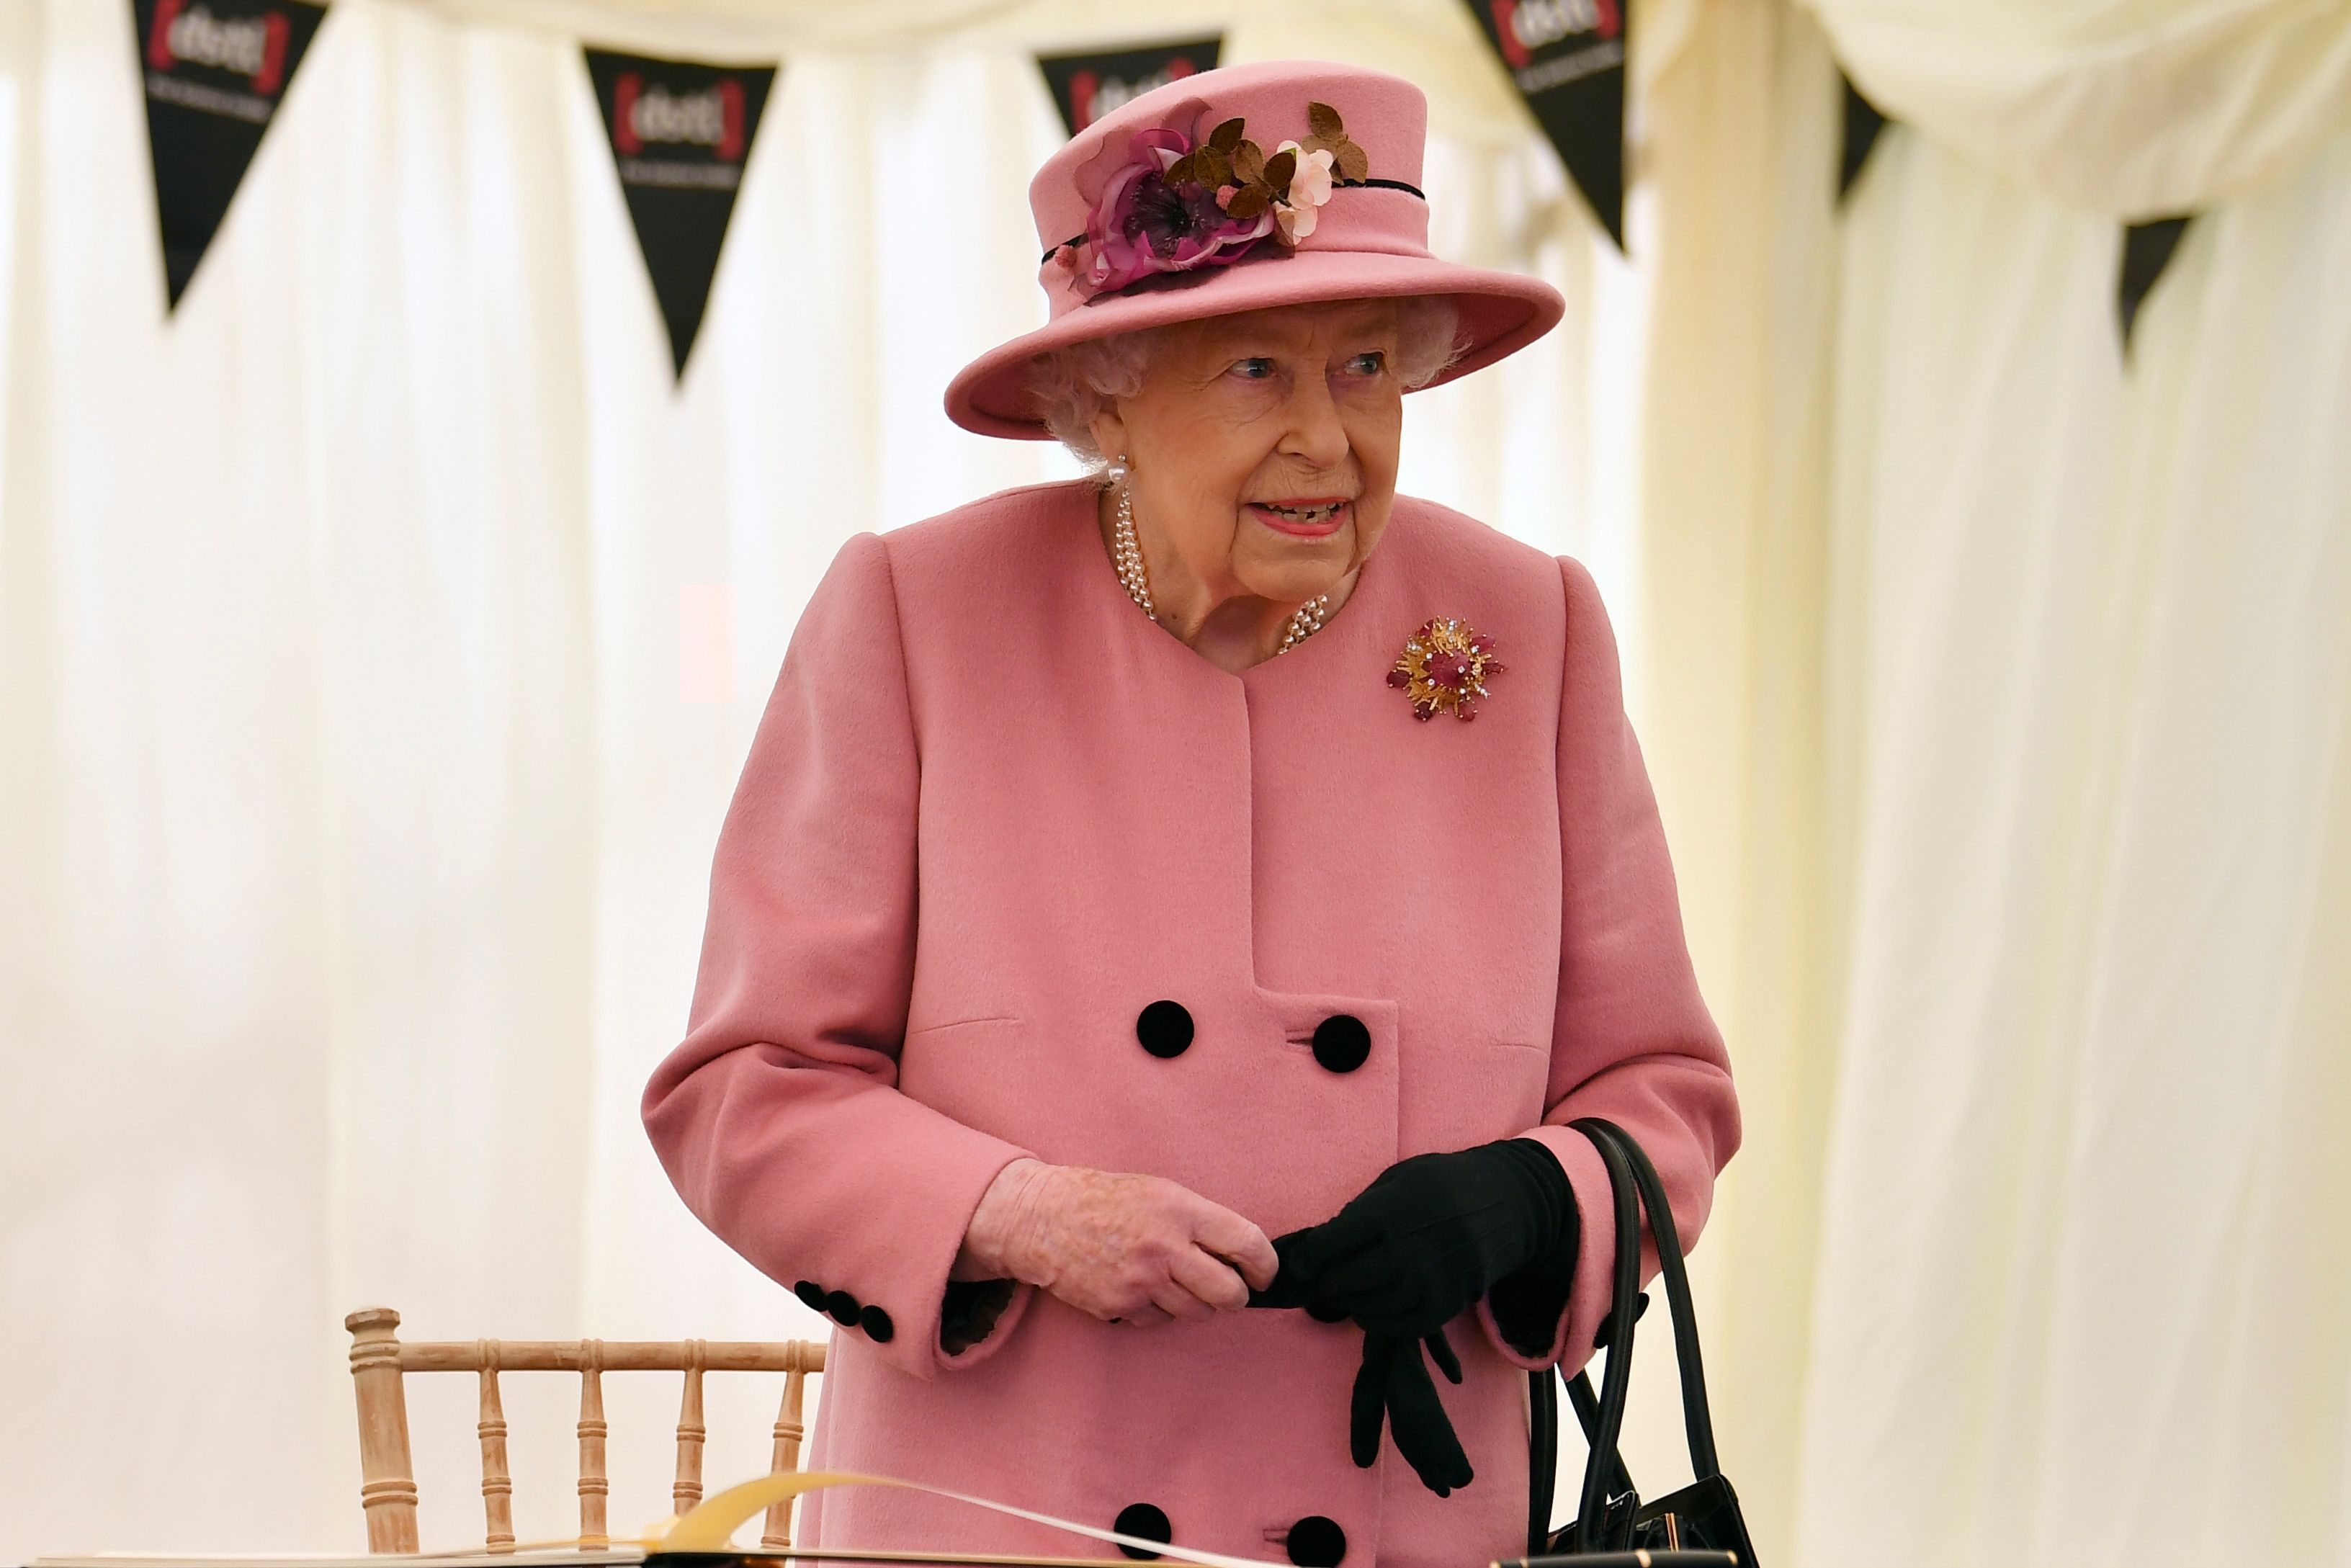 Queen Elizabeth during a visit to the Defence Science and Technology Laboratory (Dstl) at Porton Down science park on October 15, 2020. | Getty Images